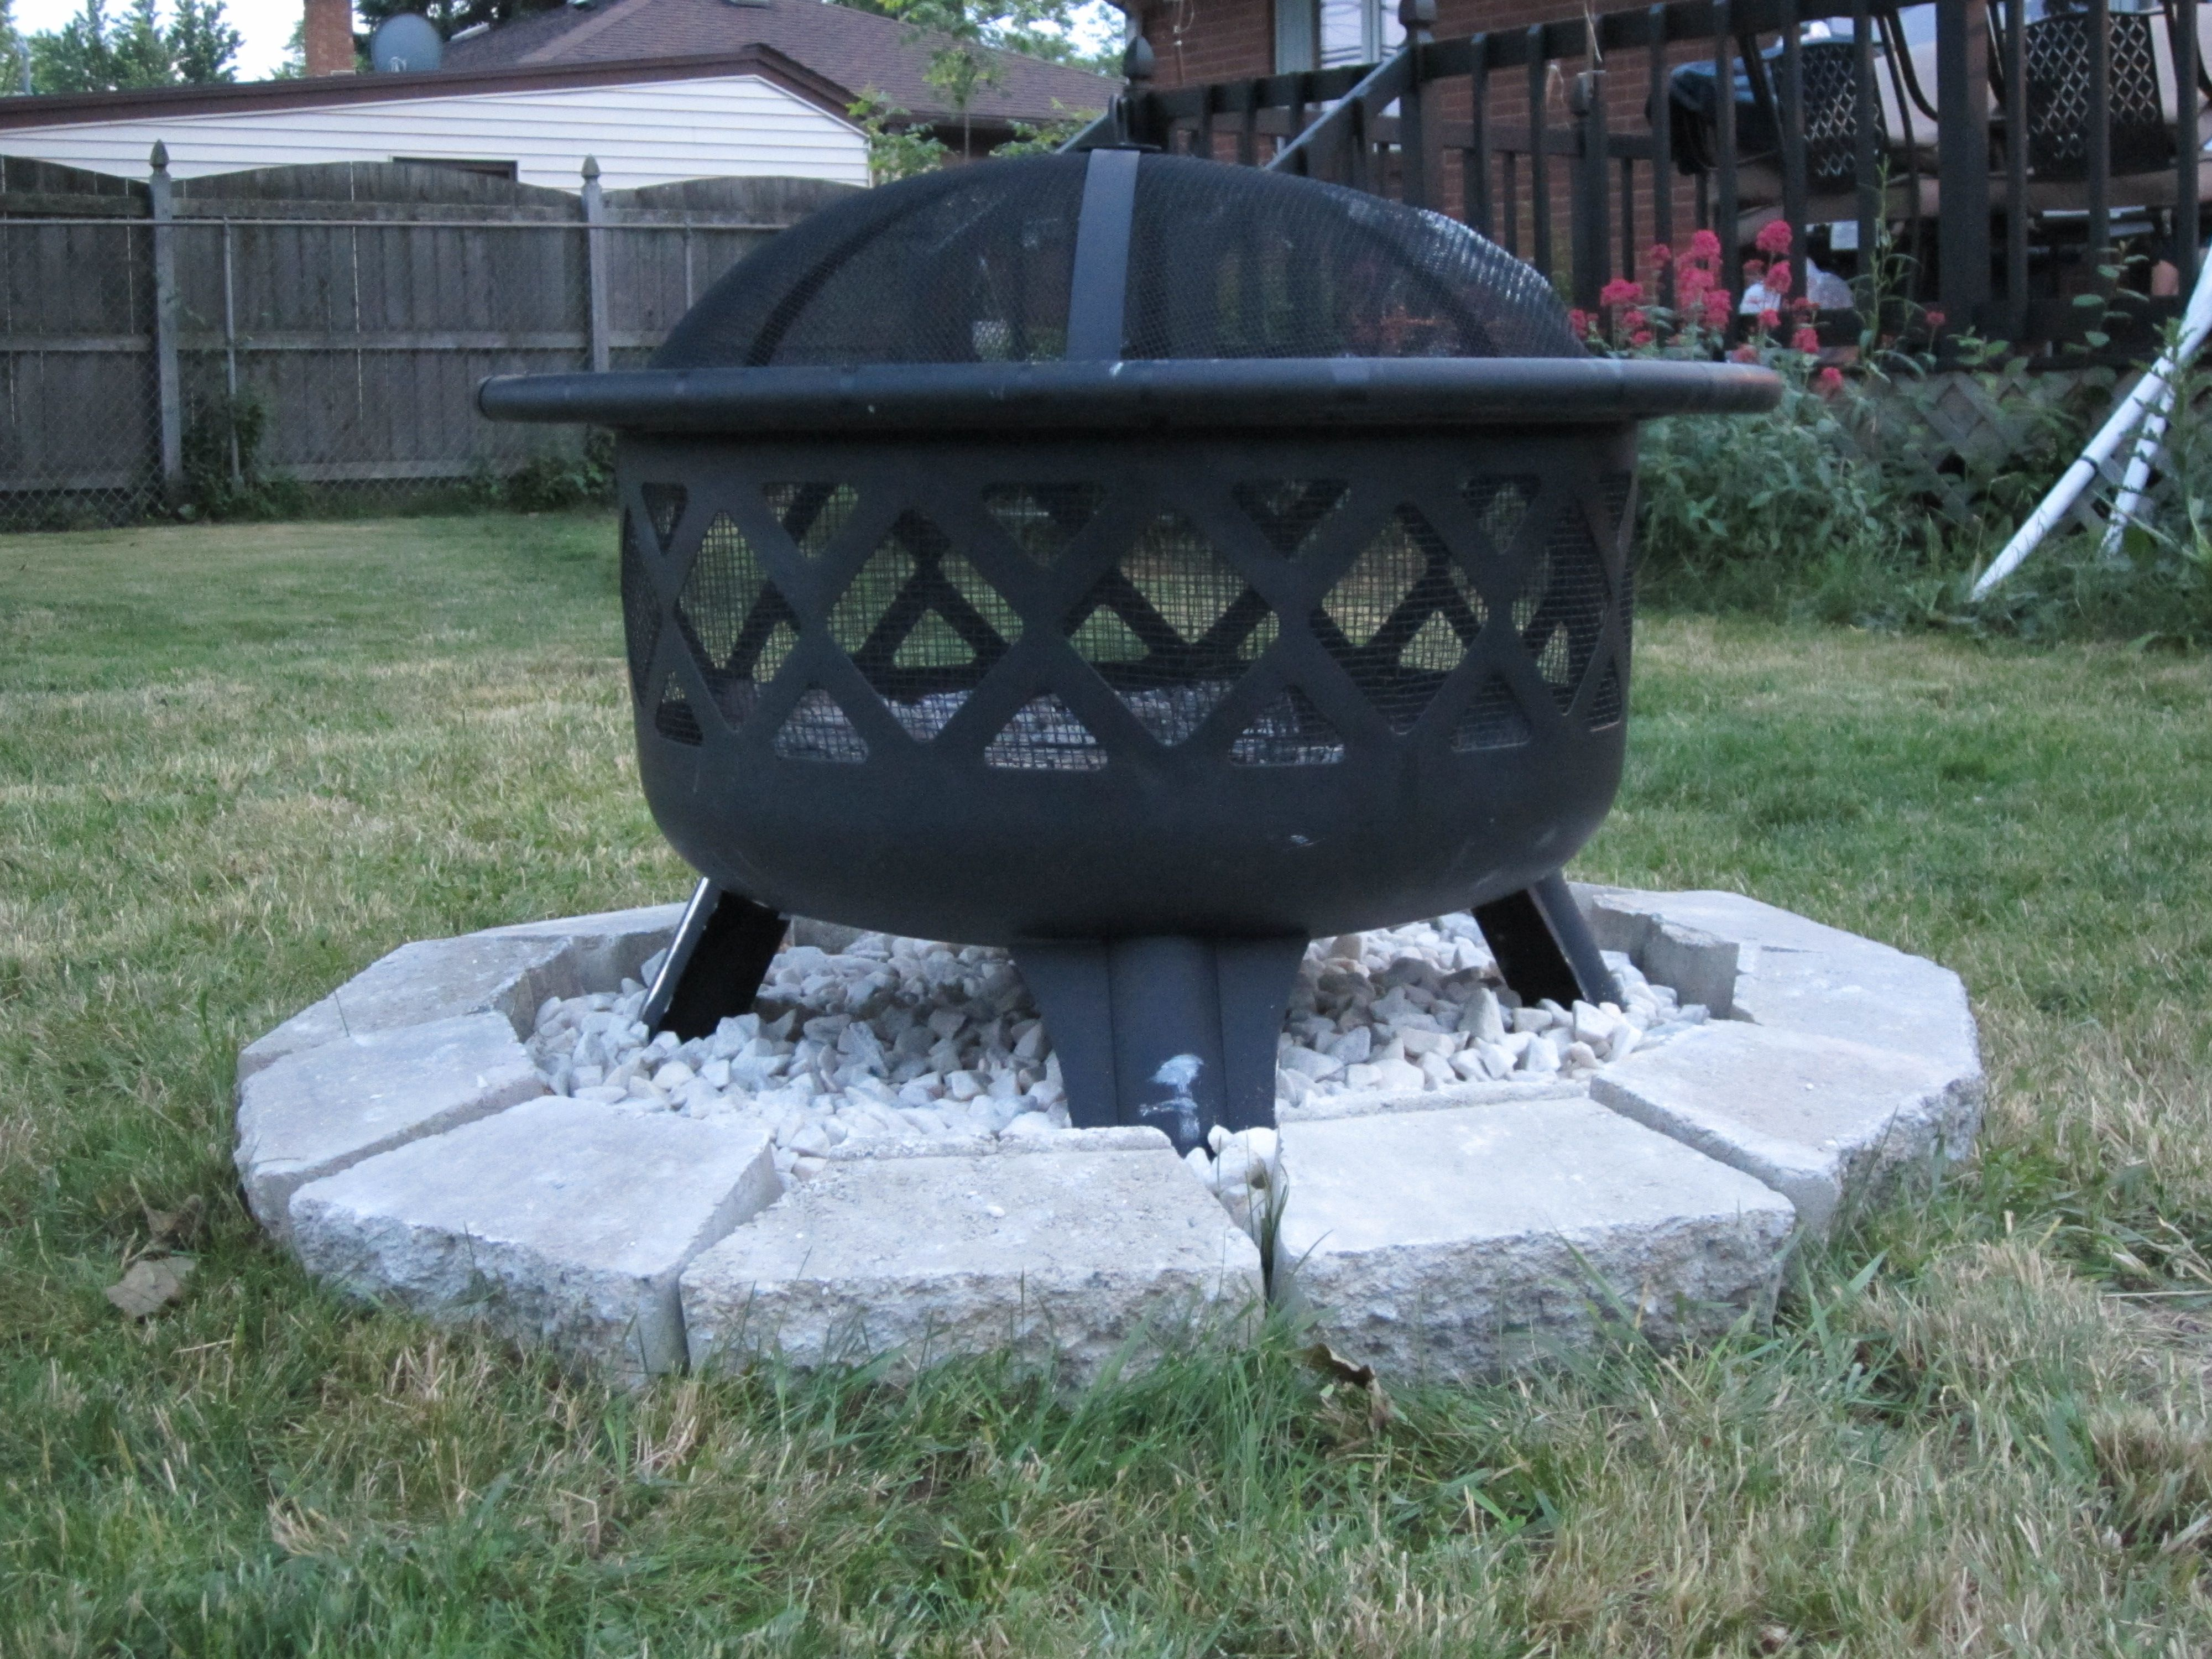 Diy Little Rock Pit For Your Fire Pit Put A Plastic Garbage Bag Over The Grass Line The Paving Rock Around It Fil Fire Pit Area Fire Pit On Grass